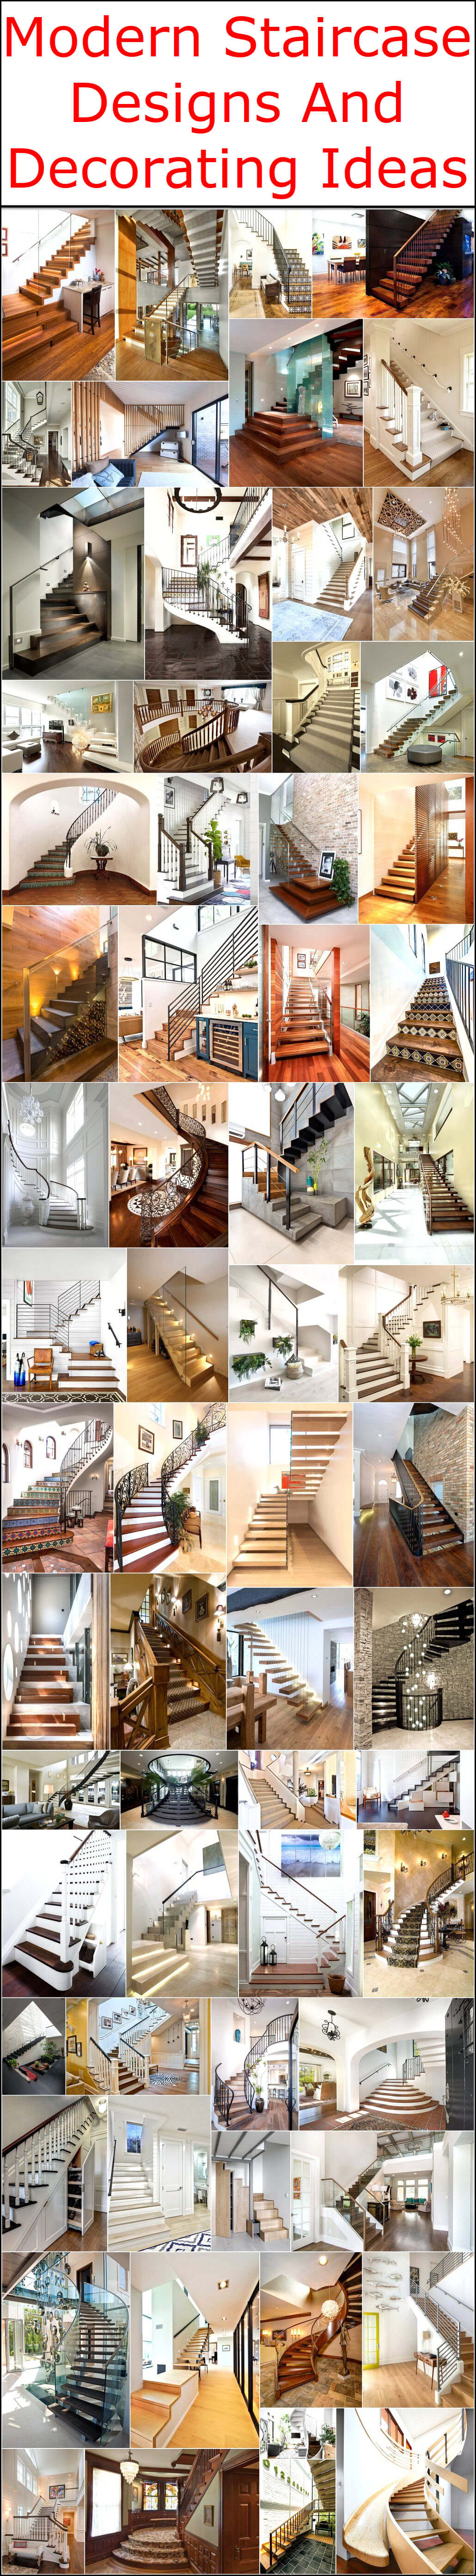 Designing Home Modern Staircase Designs And Decorating Ideas Interior Designing